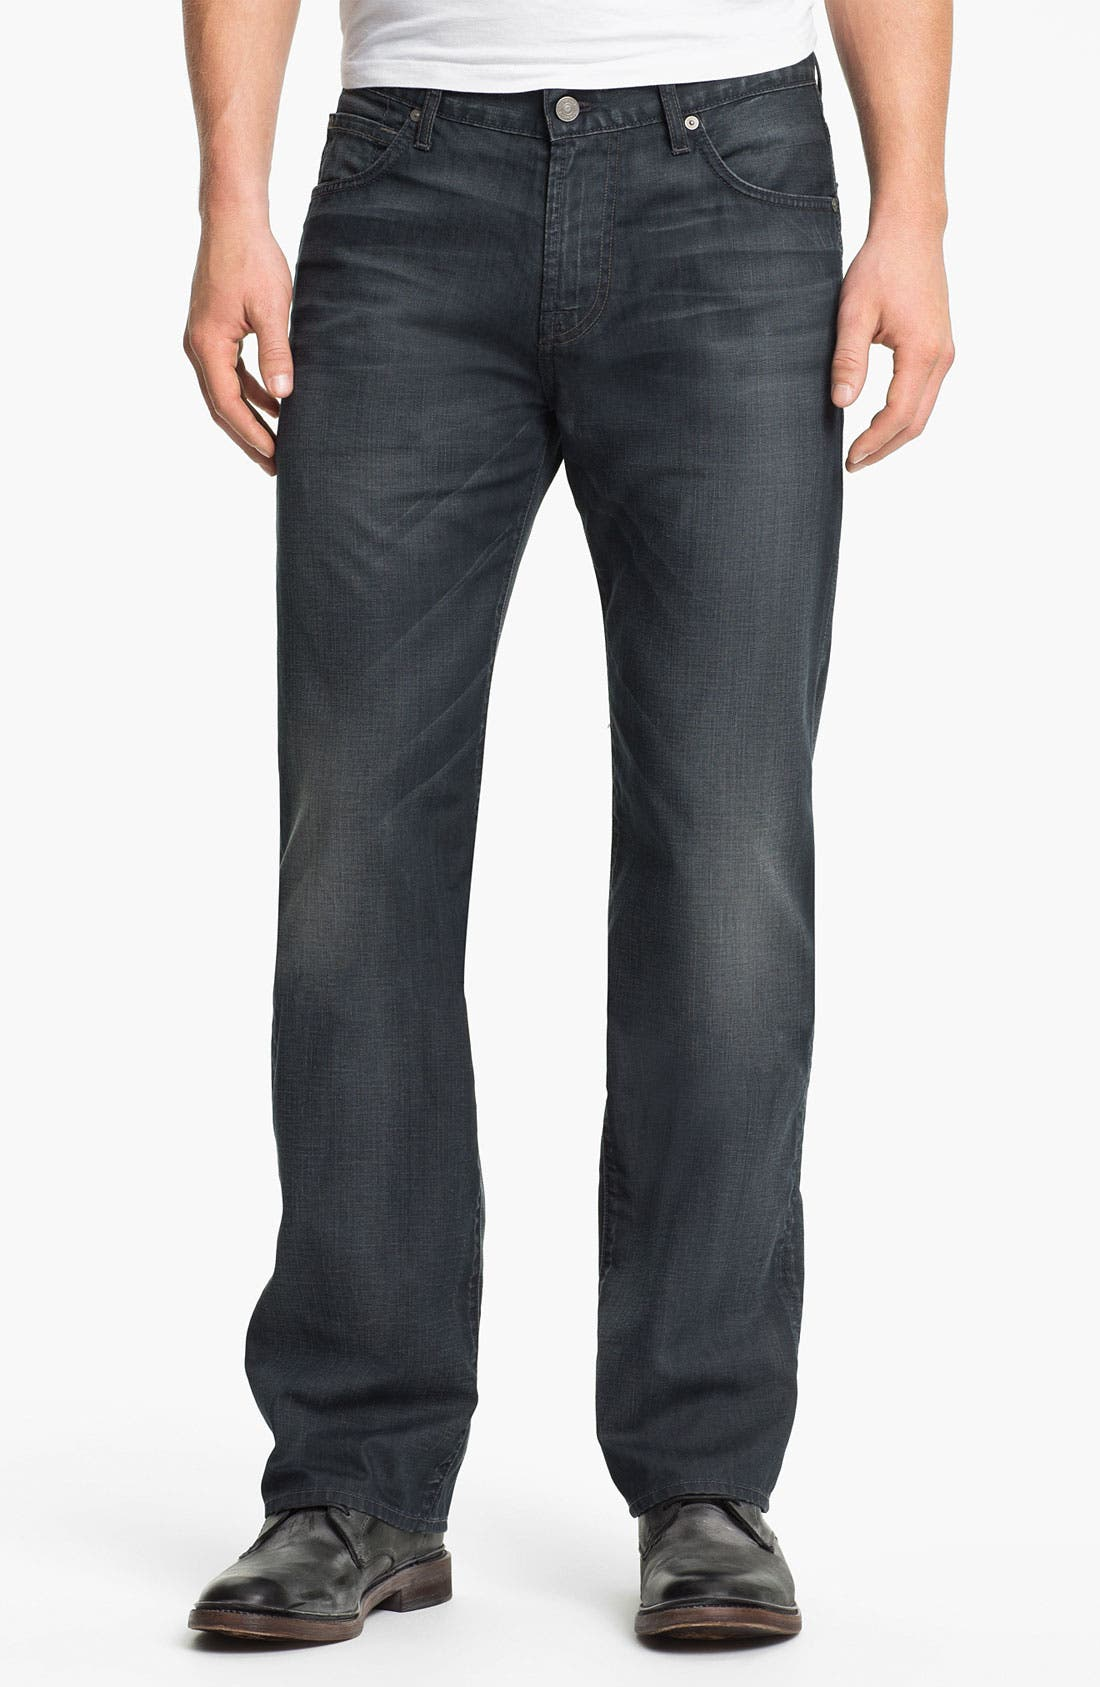 Main Image - 7 For All Mankind® 'Austyn' Straight Leg Jeans (New Grey Shade)